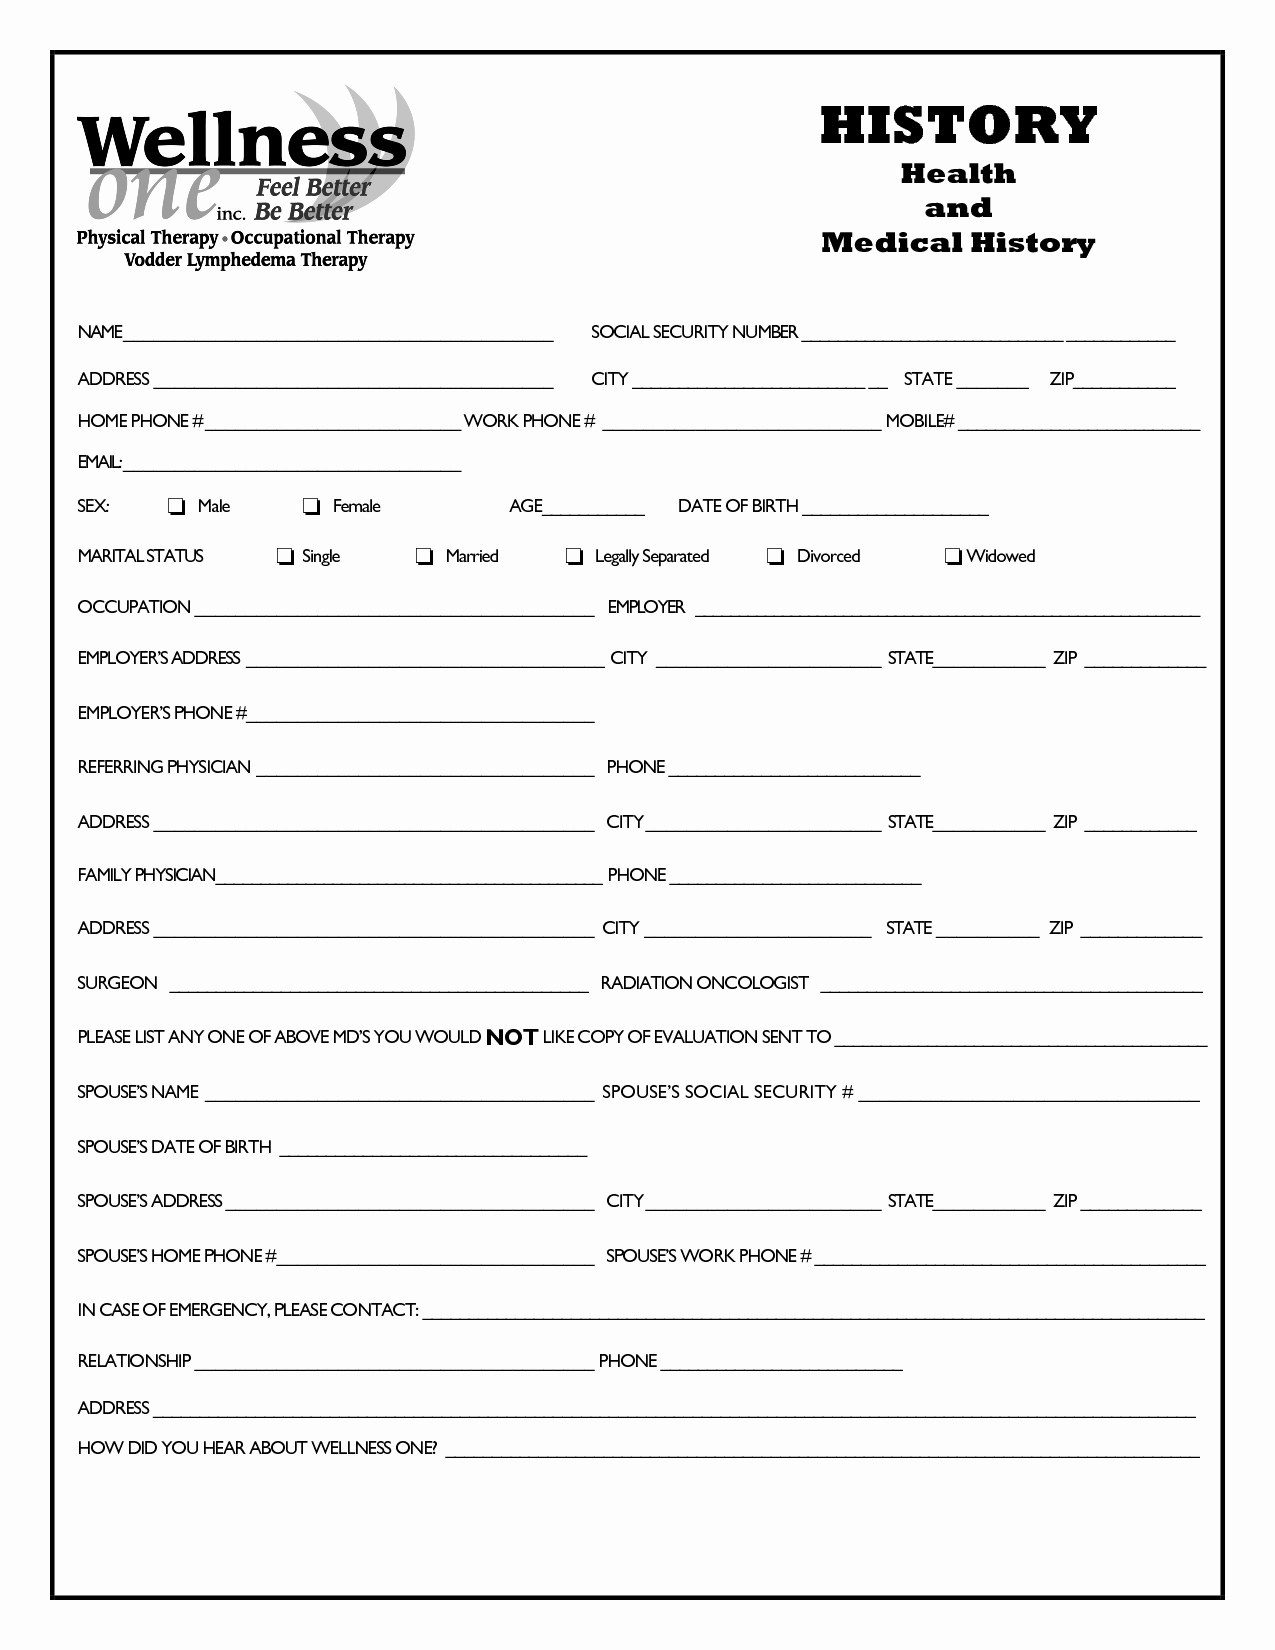 Health History form Template Beautiful Family Medical History form Pdf